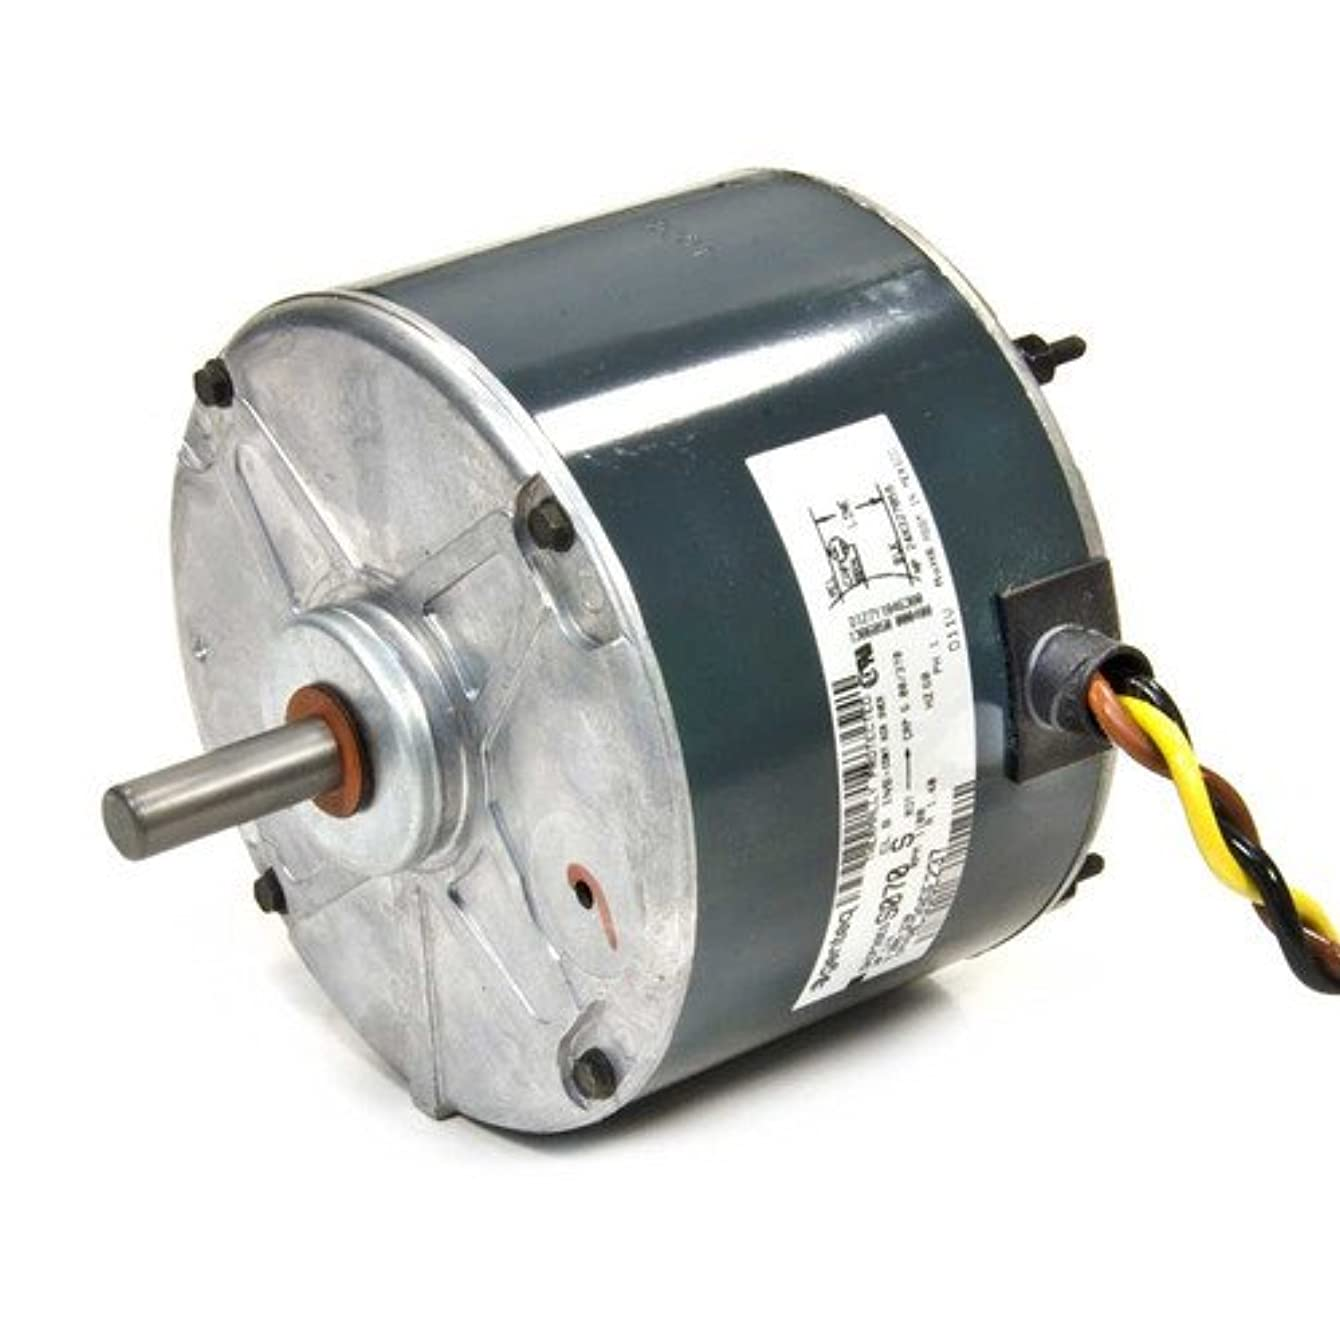 OEM Upgraded Carrier Bryant Payne 1/4 HP 230v Condenser Fan Motor HC39GE237